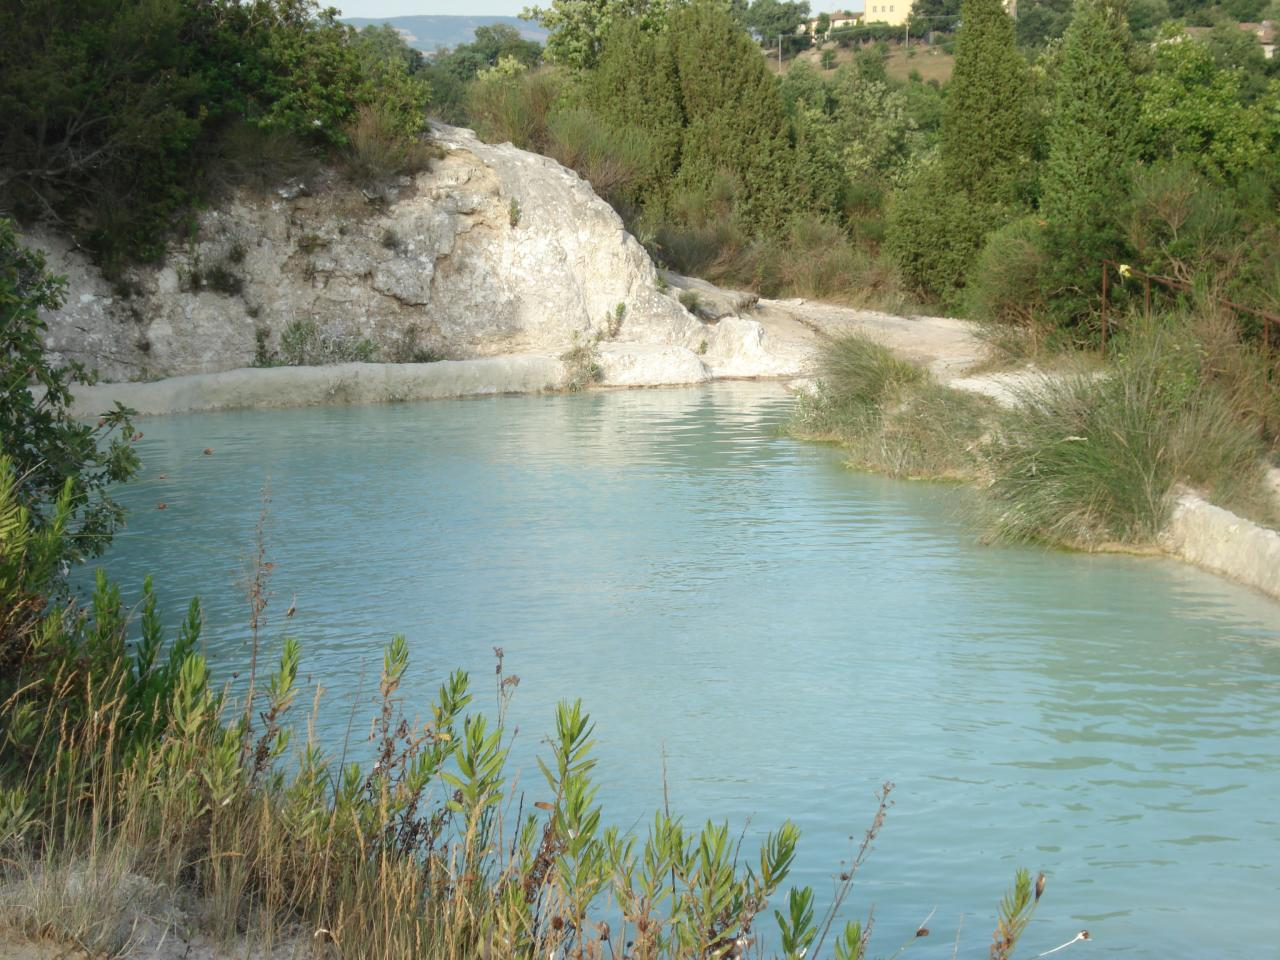 Photos of bagno vignoni thermal baths images